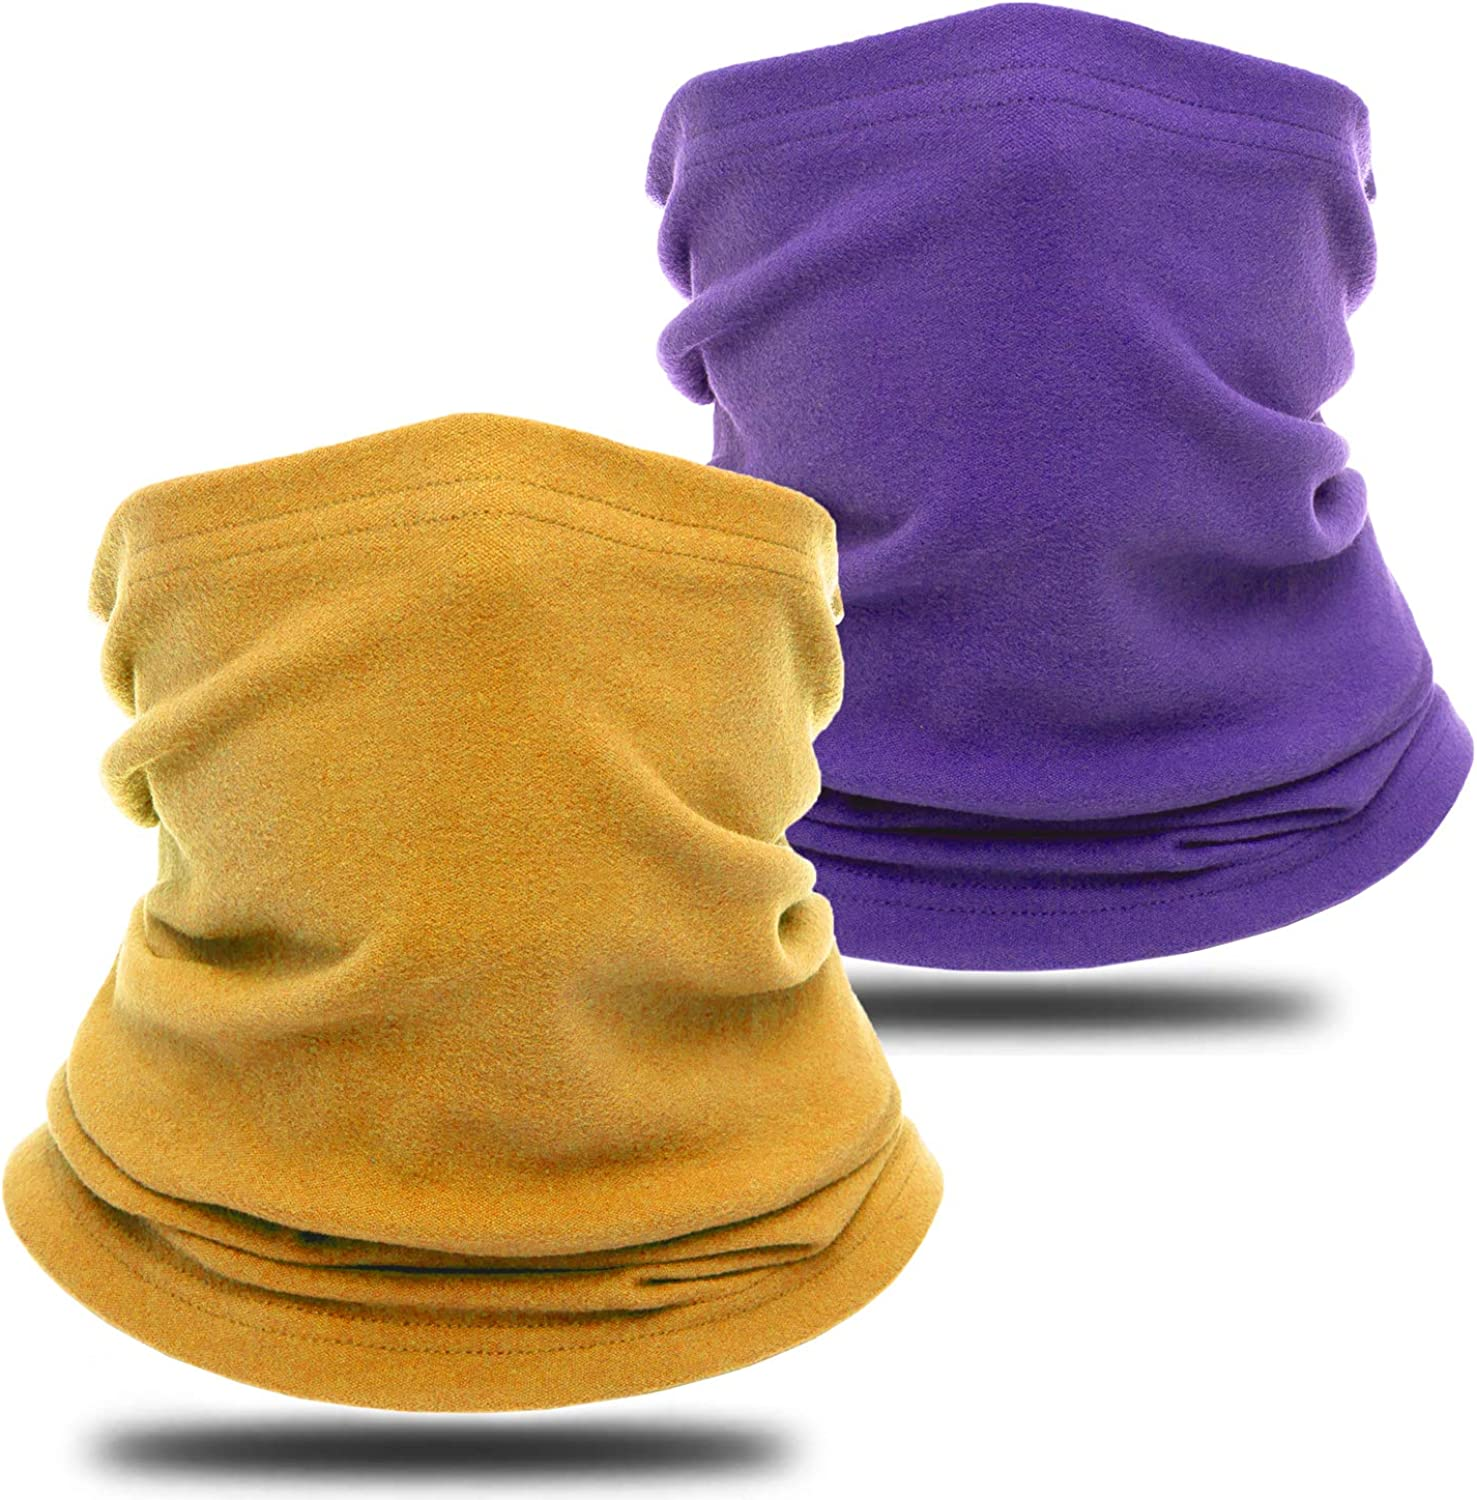 Neck Gaiter Warmer Winter Fleece Face Cover Windproof Balaclava Face Scarf Cold Weather Neck Warmers Gaiters for Women Men